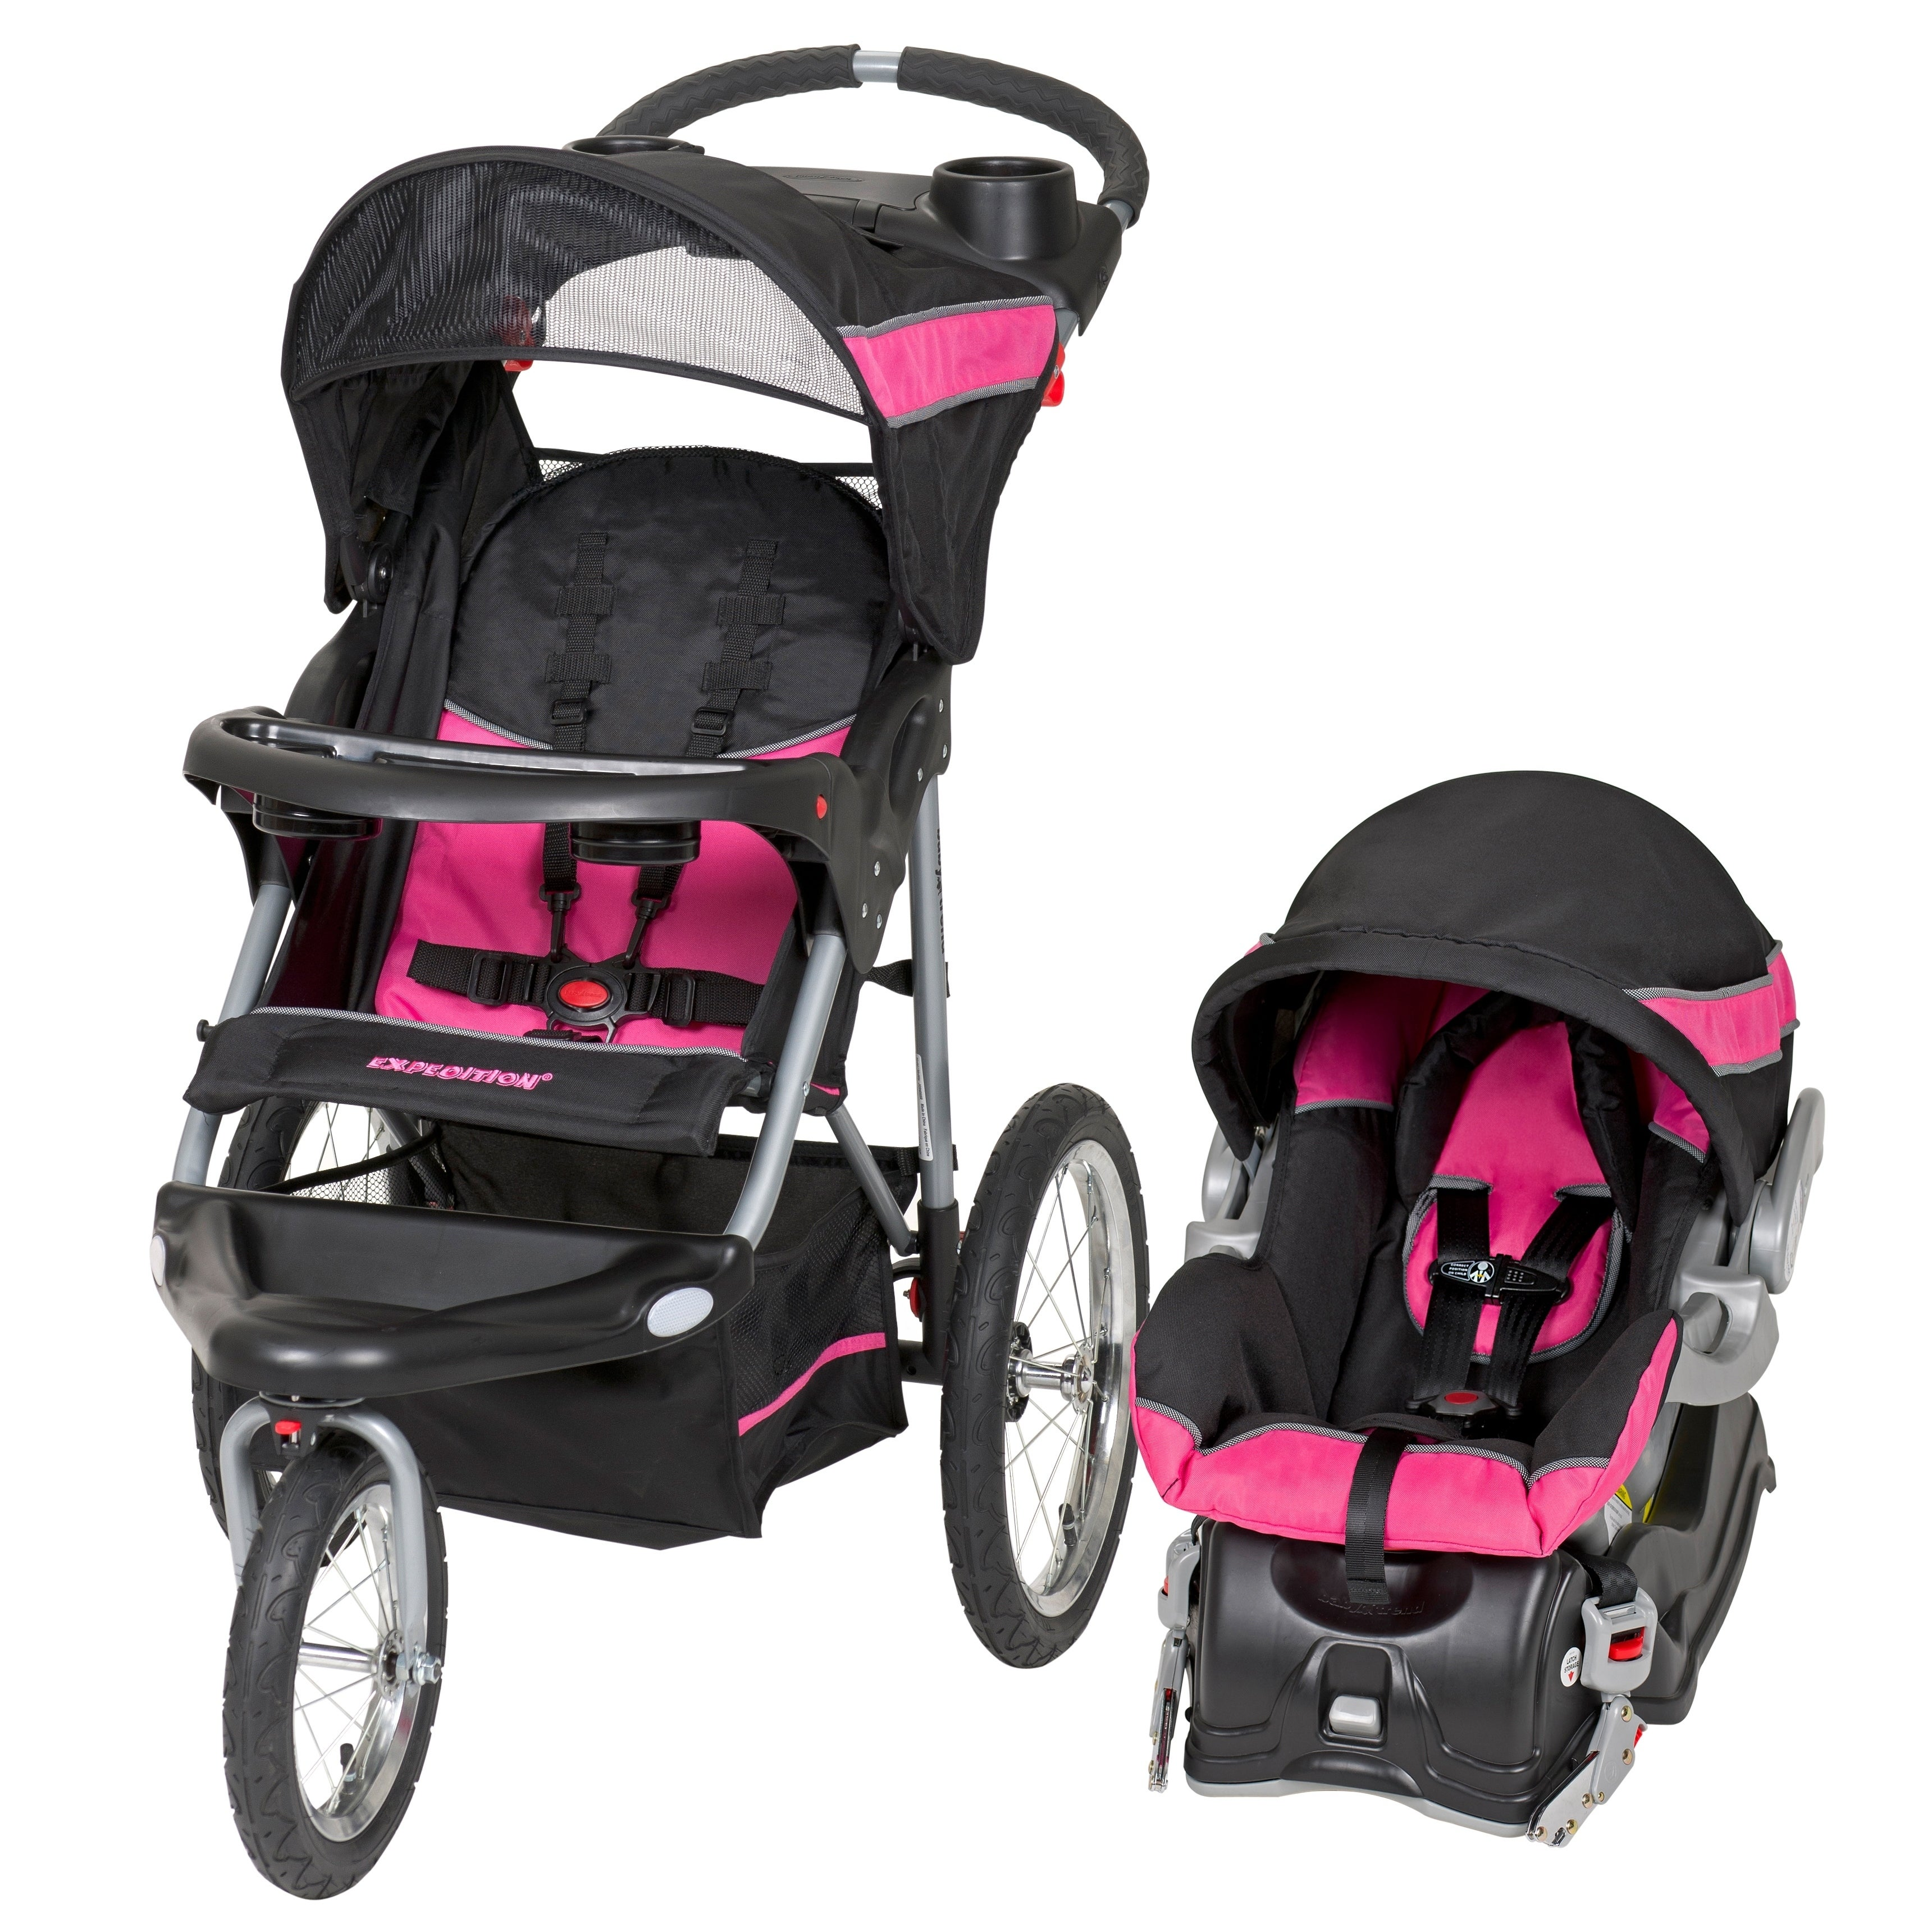 Baby Trend Expedition Jogger Travel System,Bubble Gum, Black